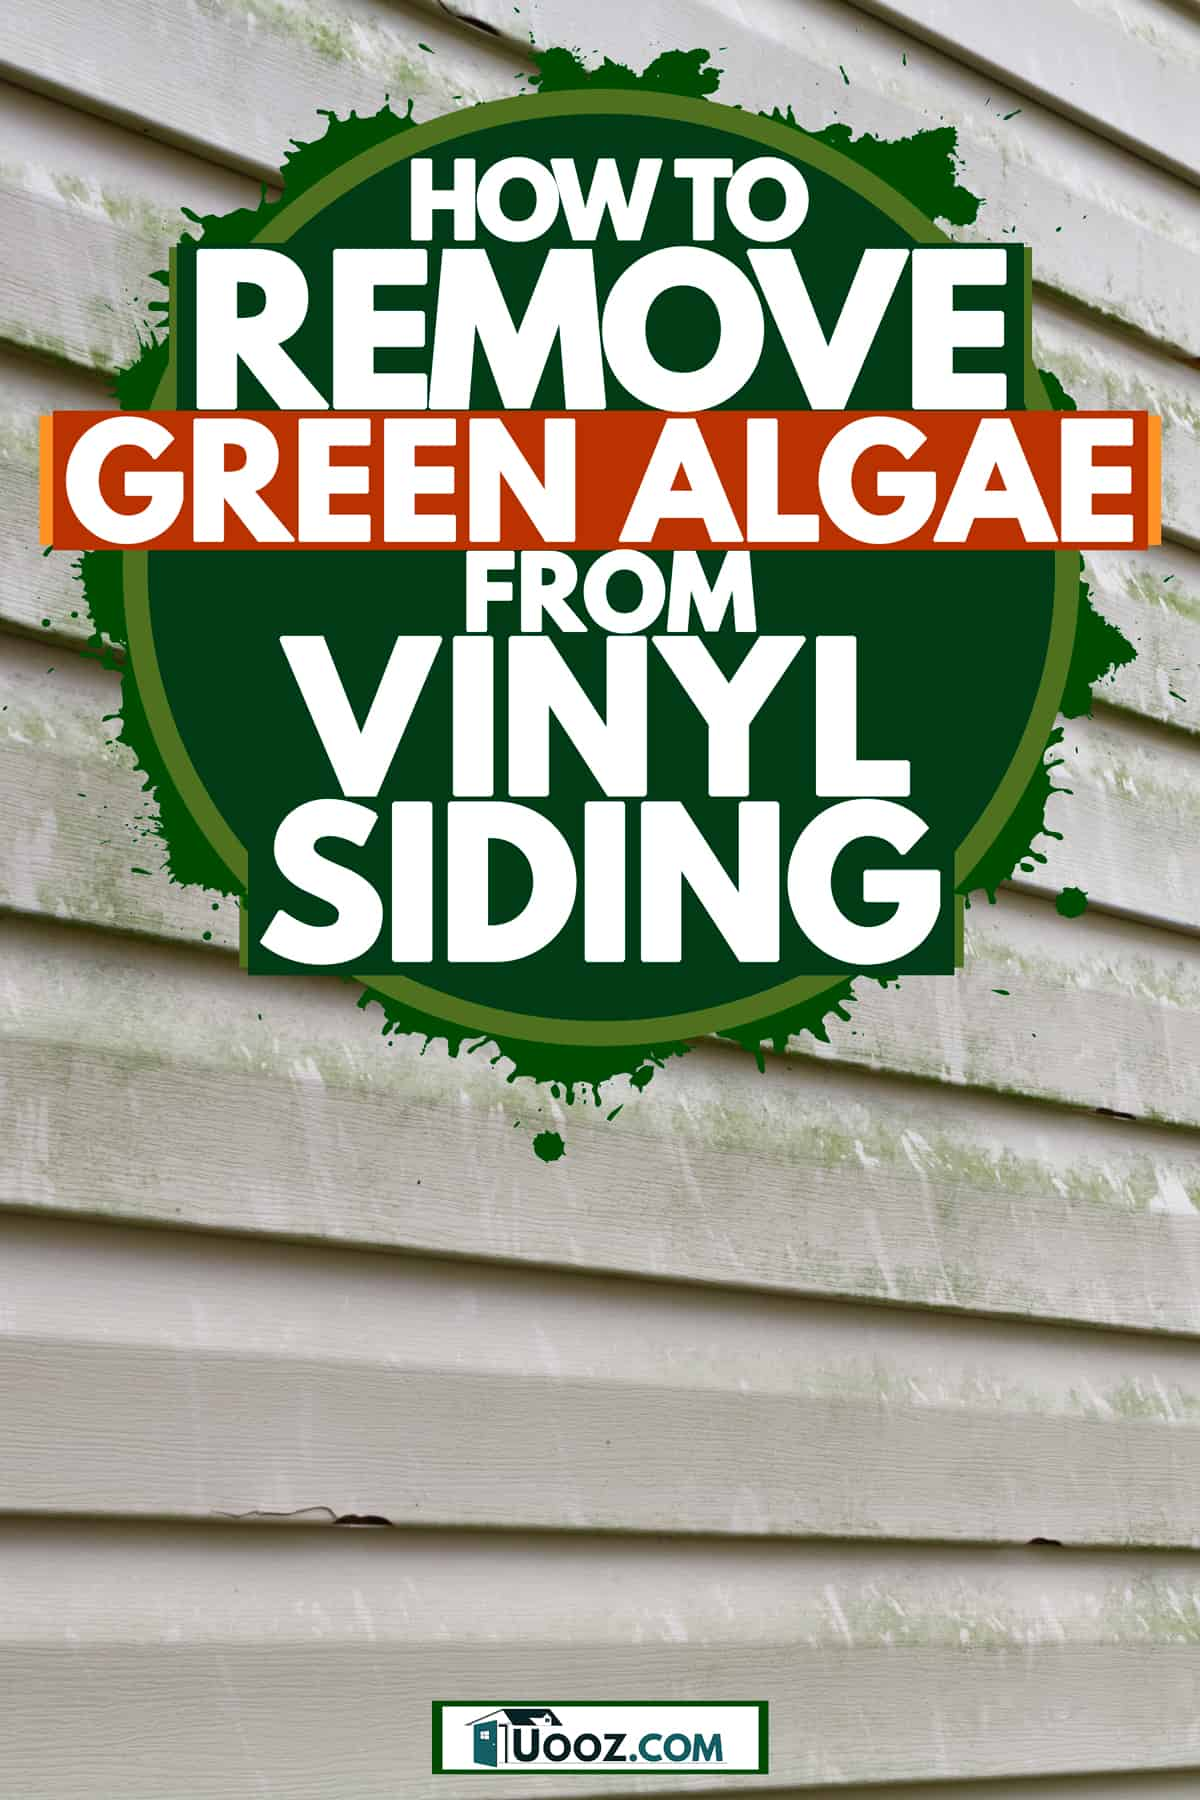 A house with vinyl sidings with green algae growing on the walls, How To Remove Green Algae From Vinyl Siding